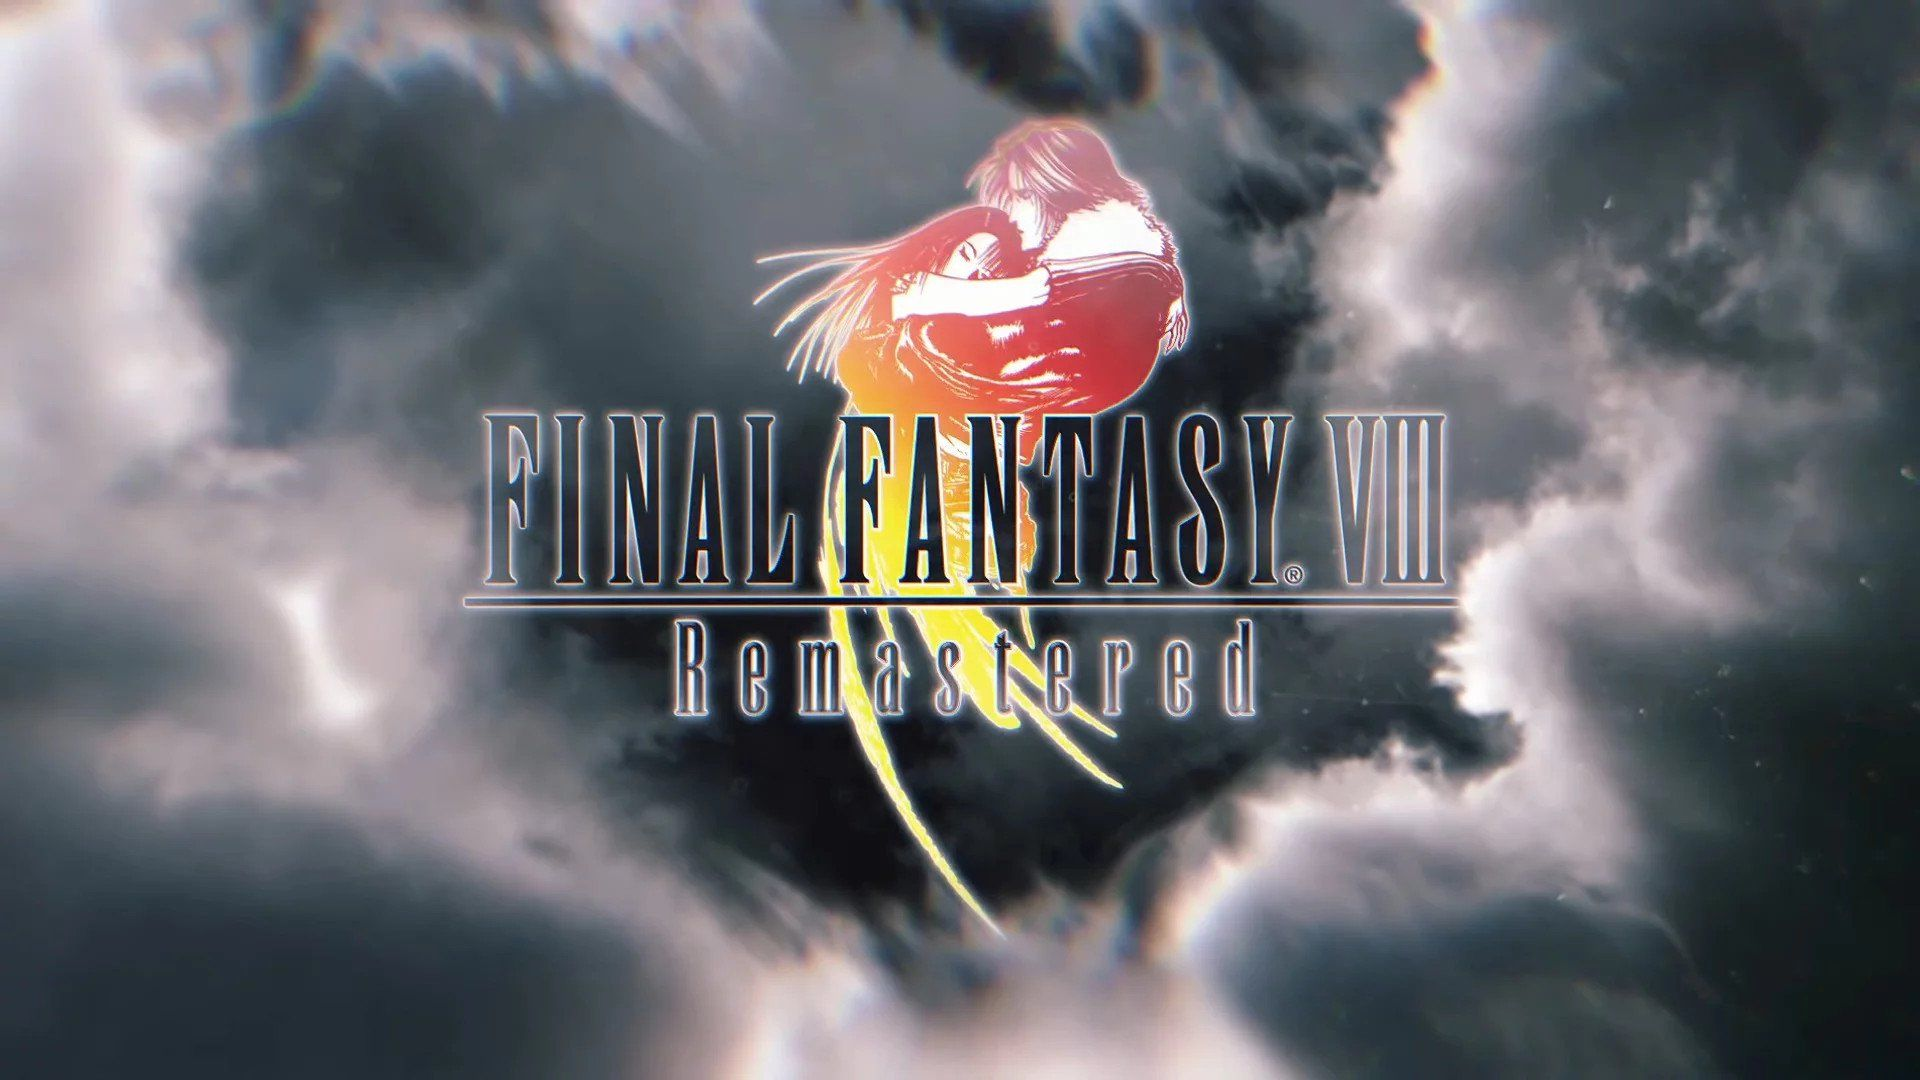 Final Fantasy Viii Remastered Coming To Pc And Consoles In